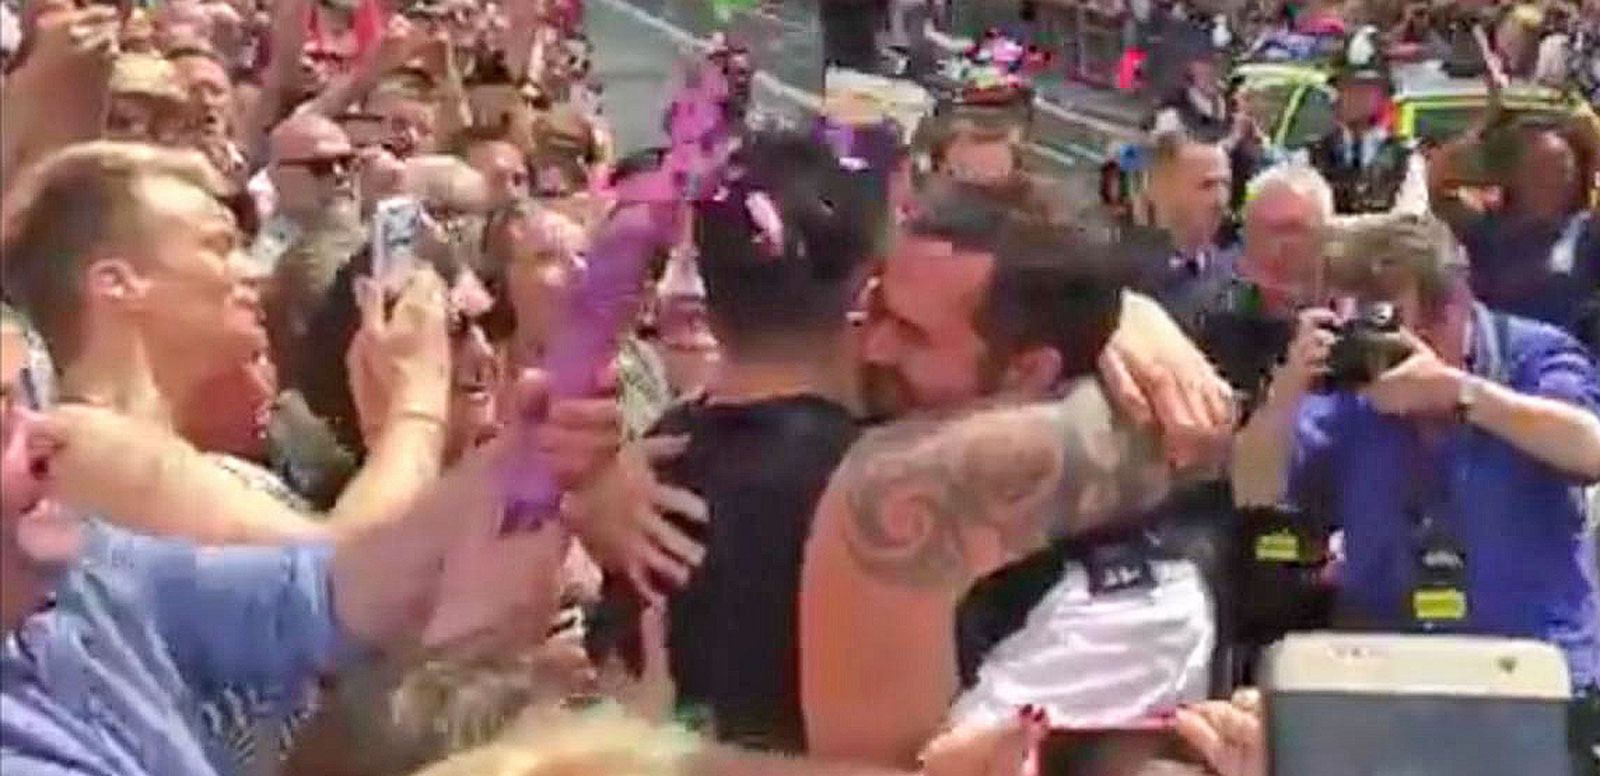 VIDEO: Police Officer Proposes to His Partner at London Pride Parade